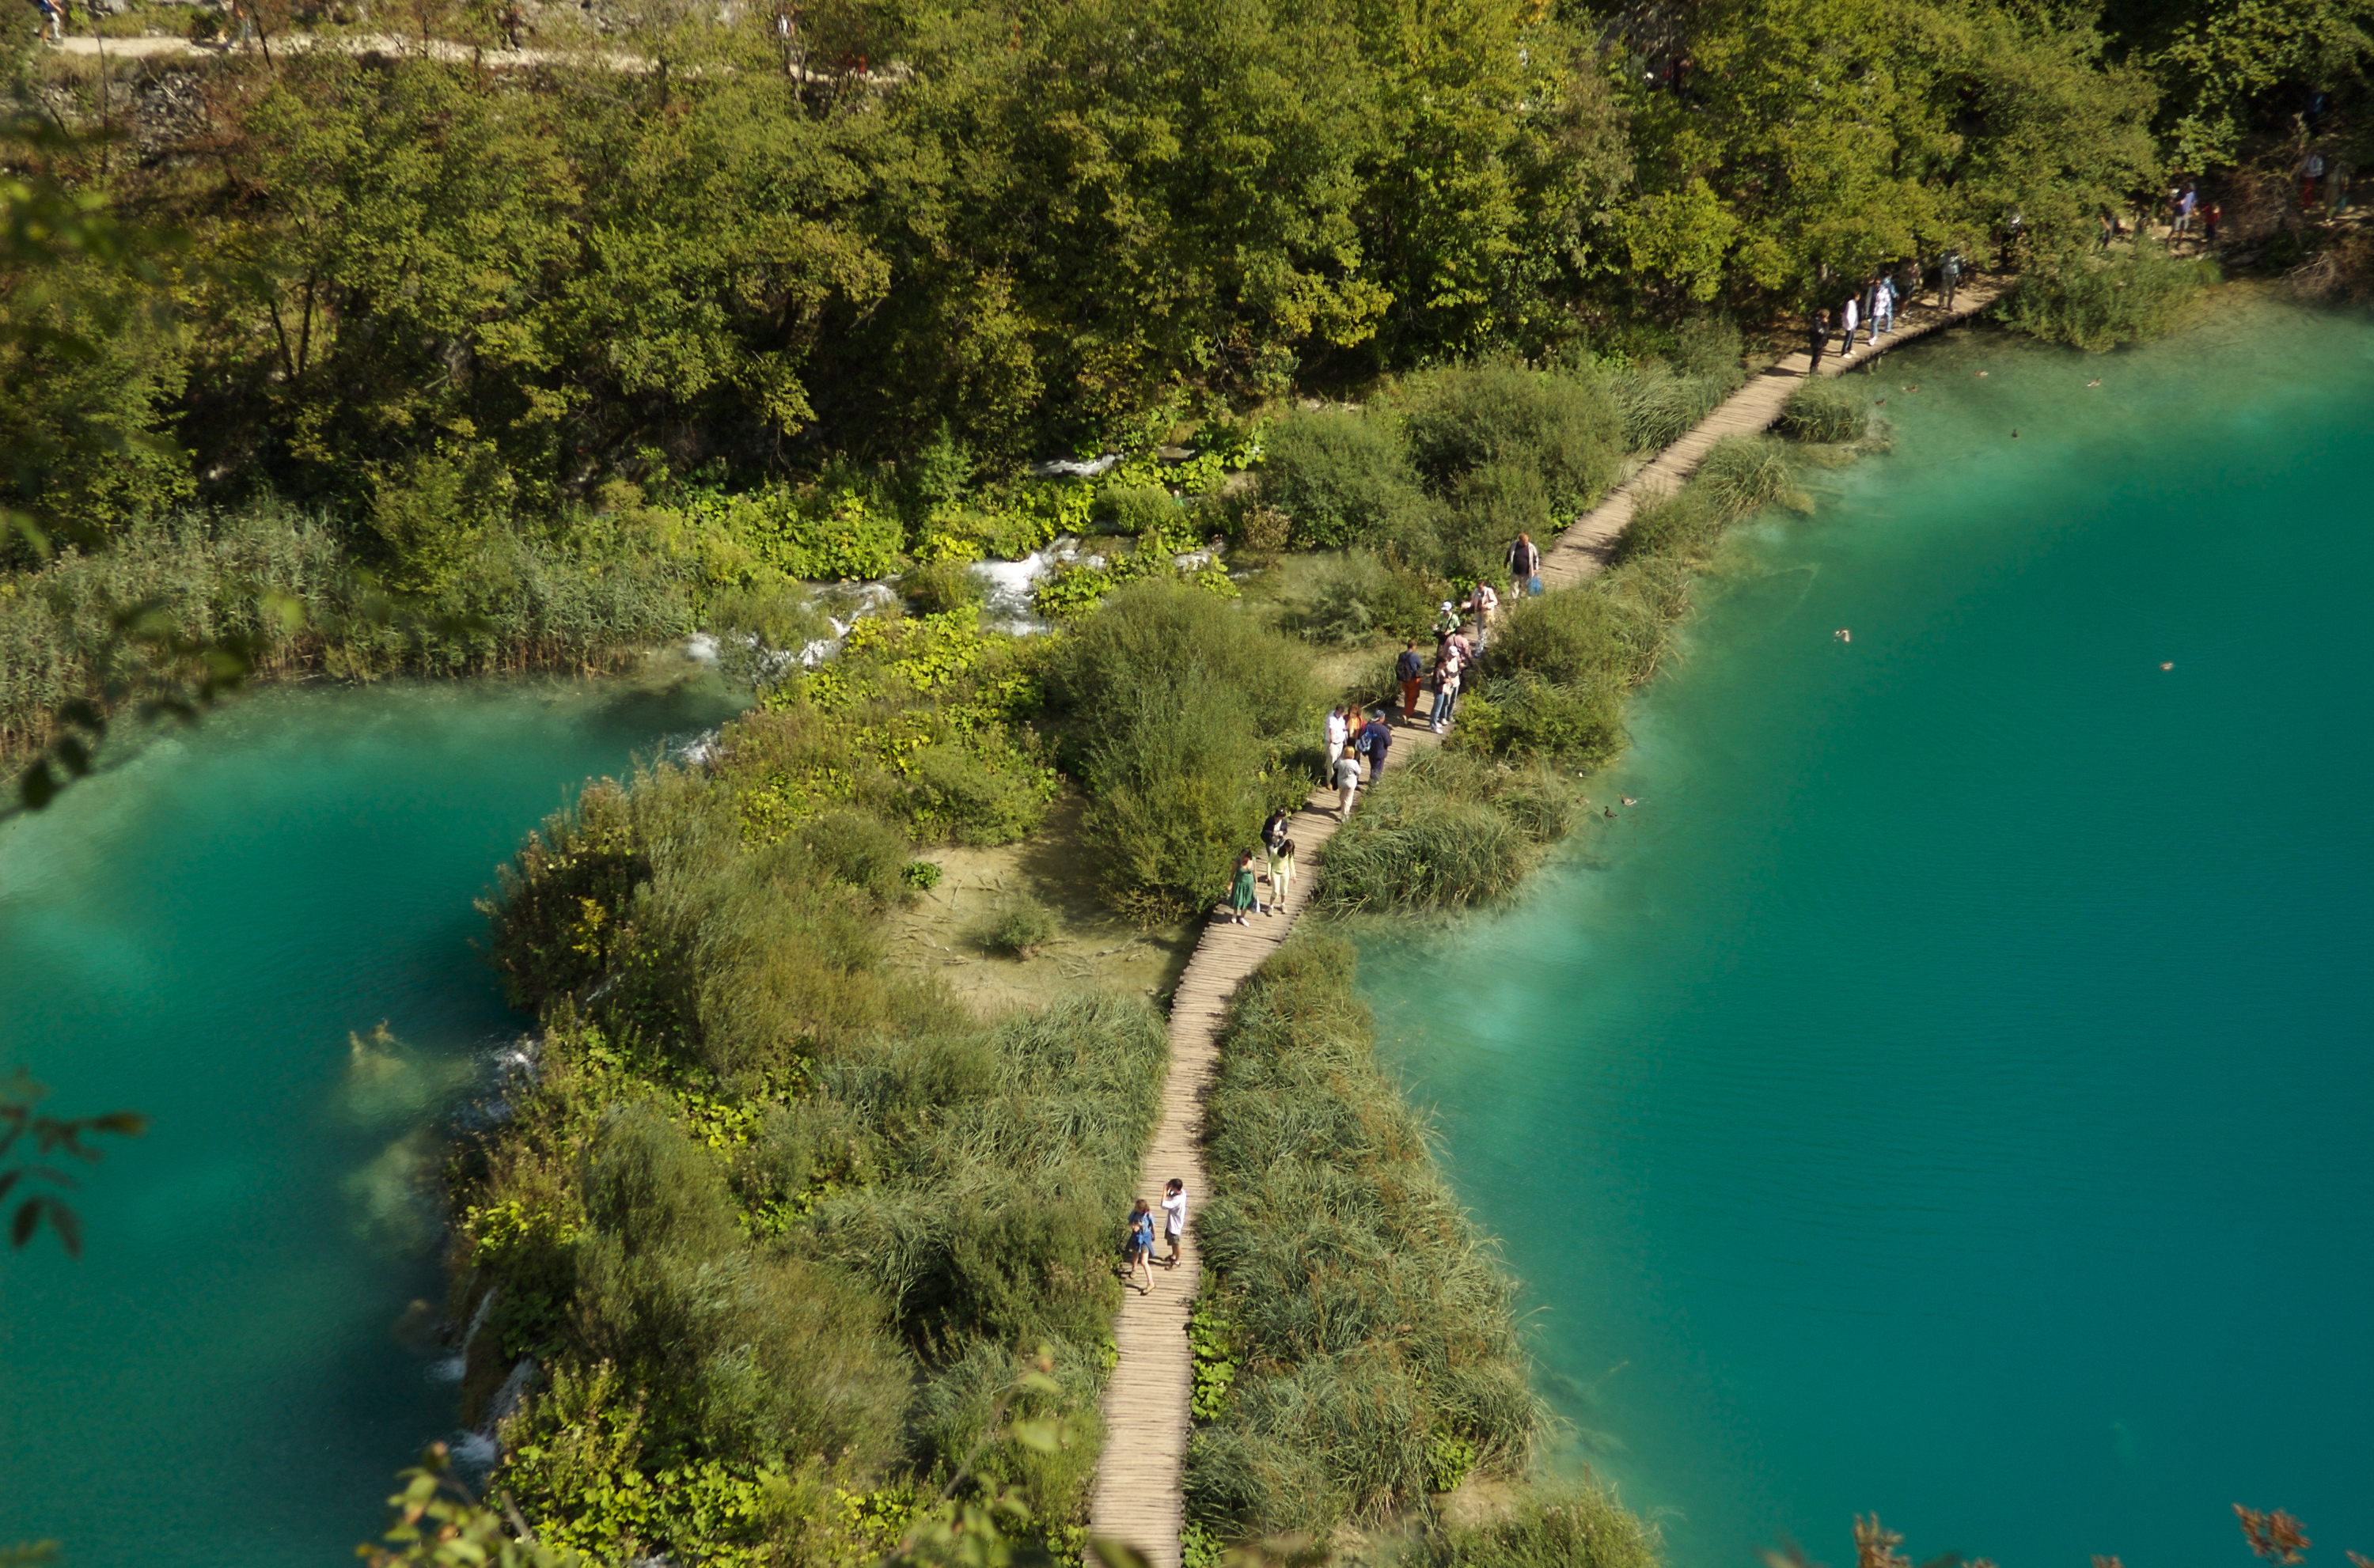 Croatia national park guide